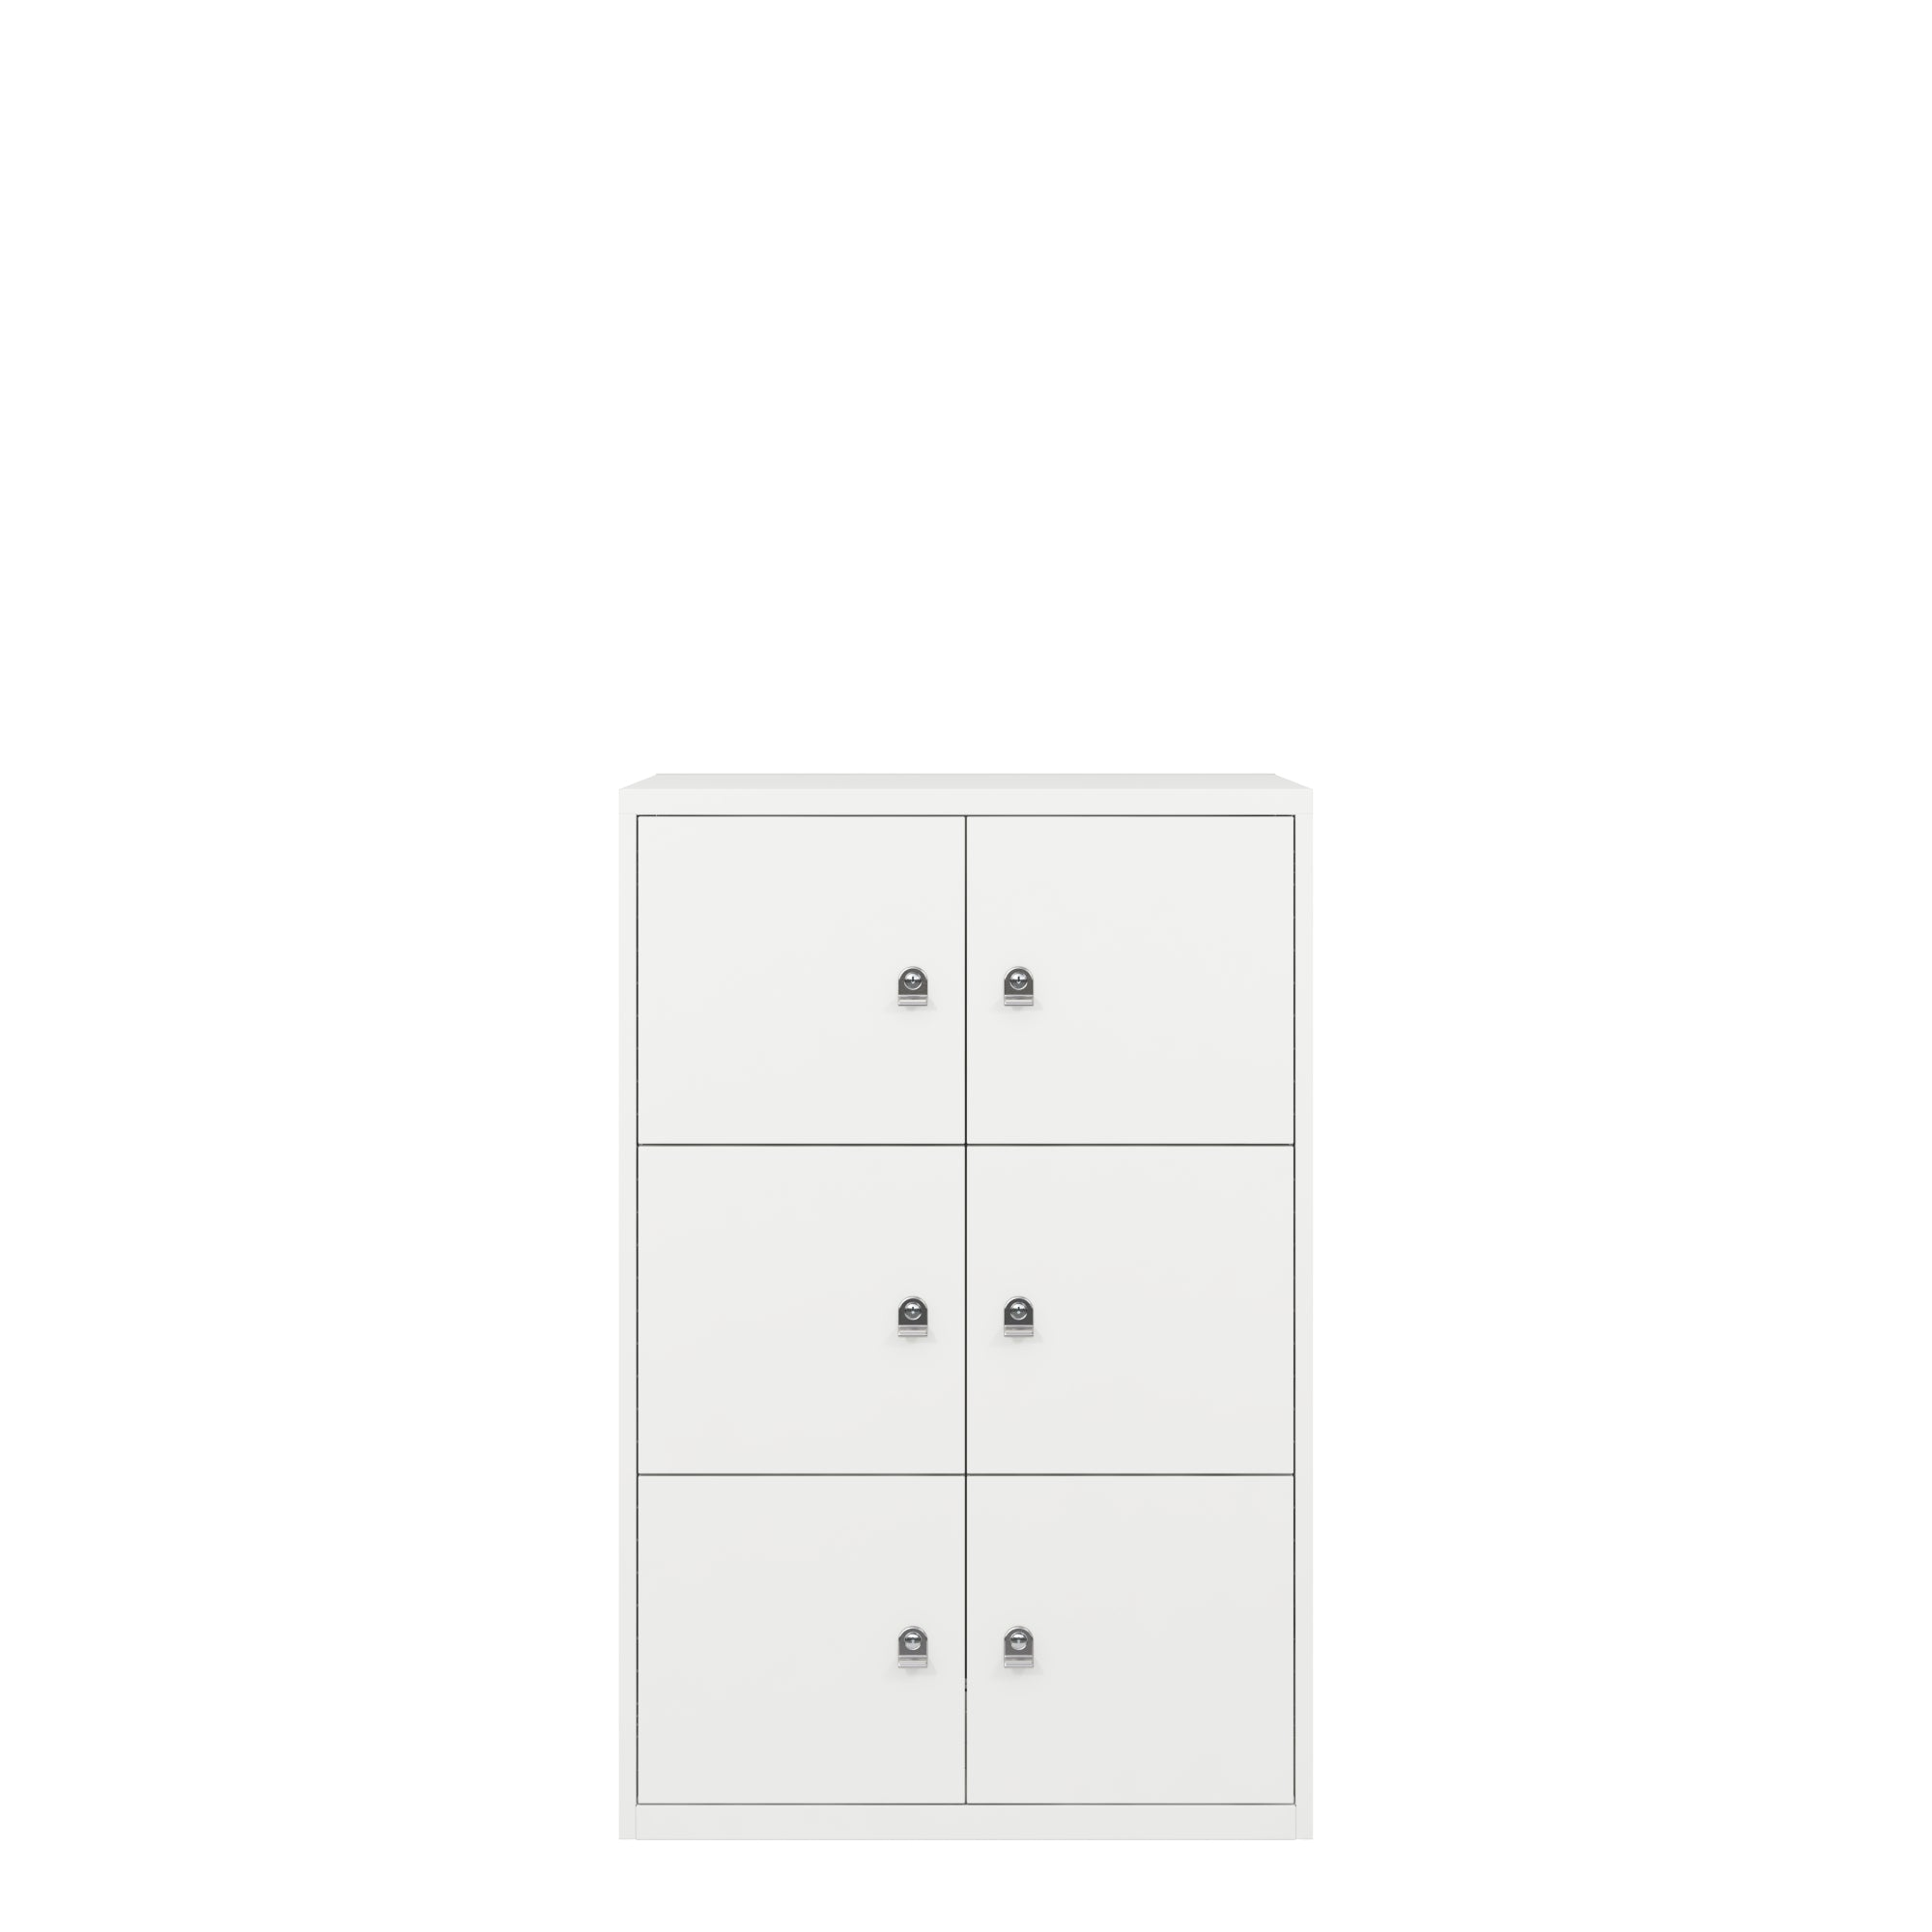 Bisley Metal Office Six Door LateralFile Locker Traffic White